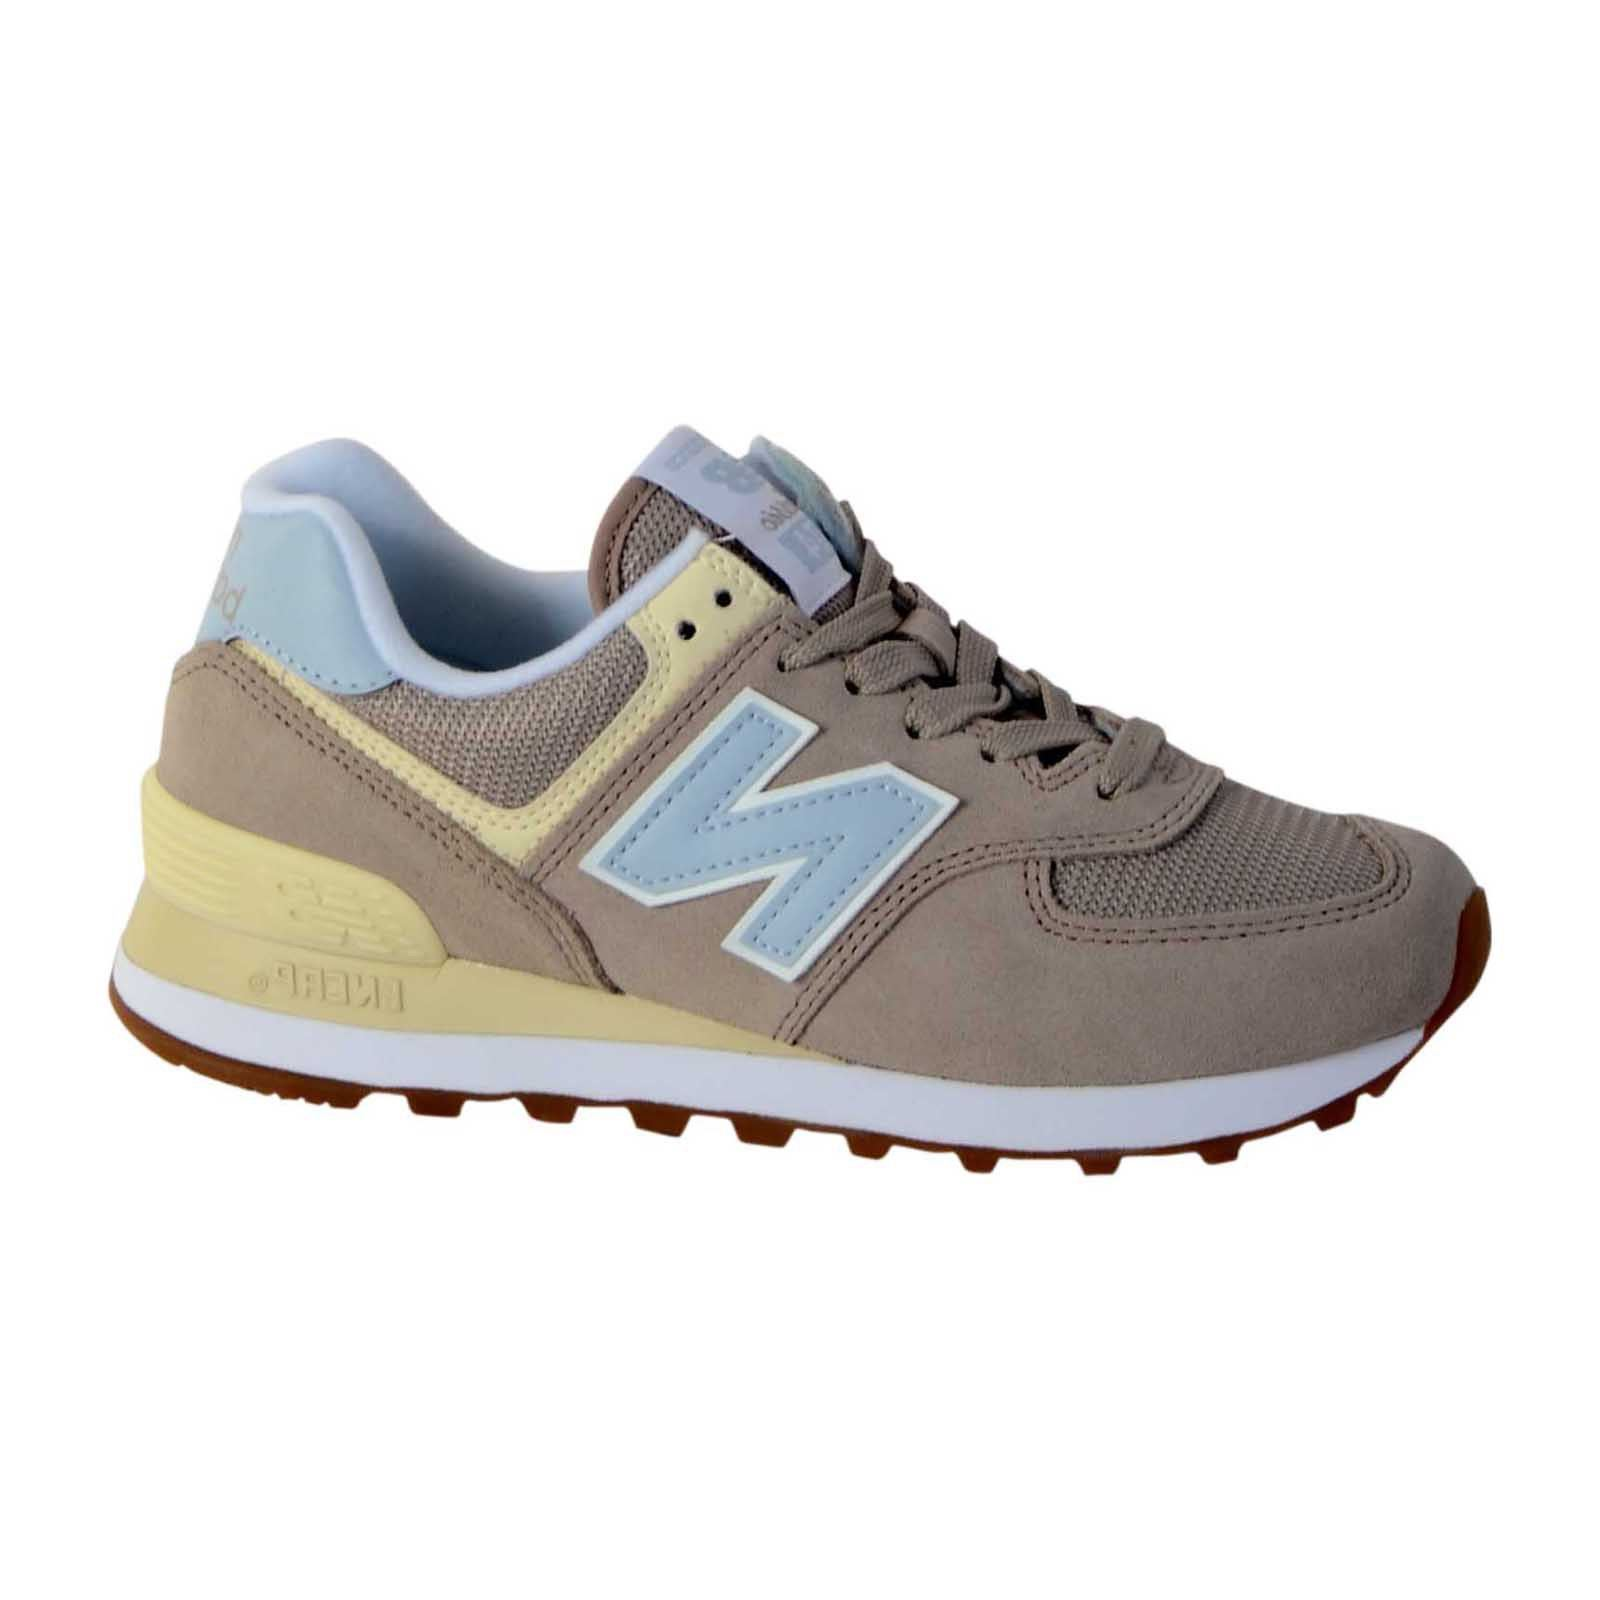 f10d1245aa81 New Balance Baskets basses - rose clair